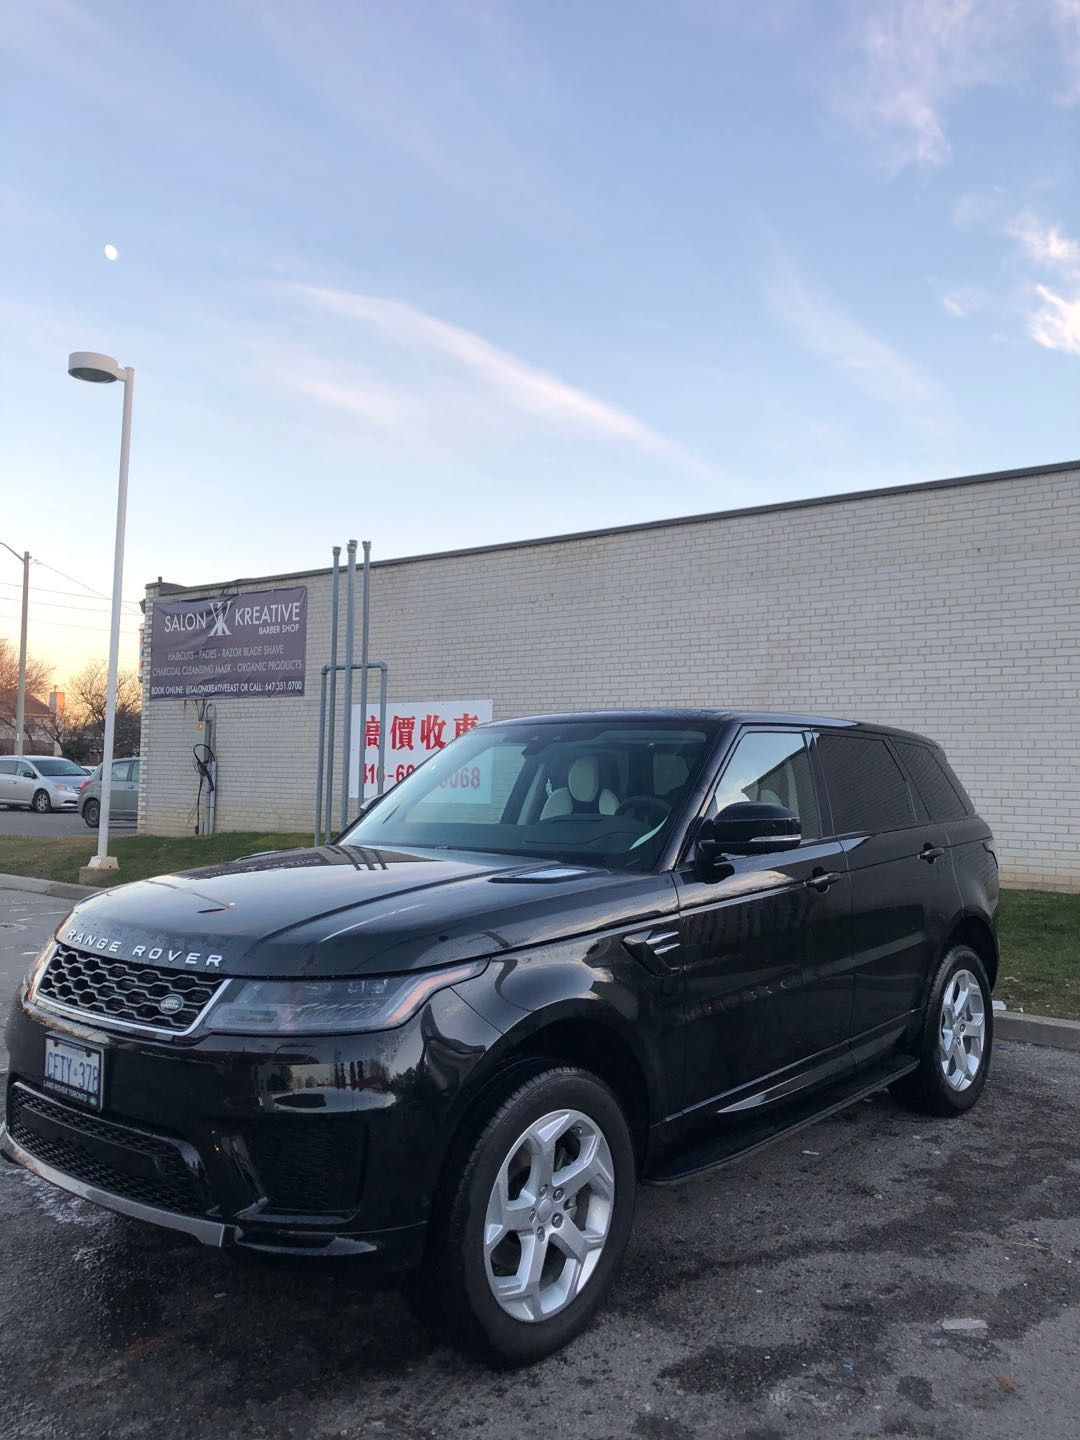 2018 Land Rover Range Rover Sport range rover sport td6 - INFOCAR - Toronto's Most Comprehensive New and Used Auto Trading Platform